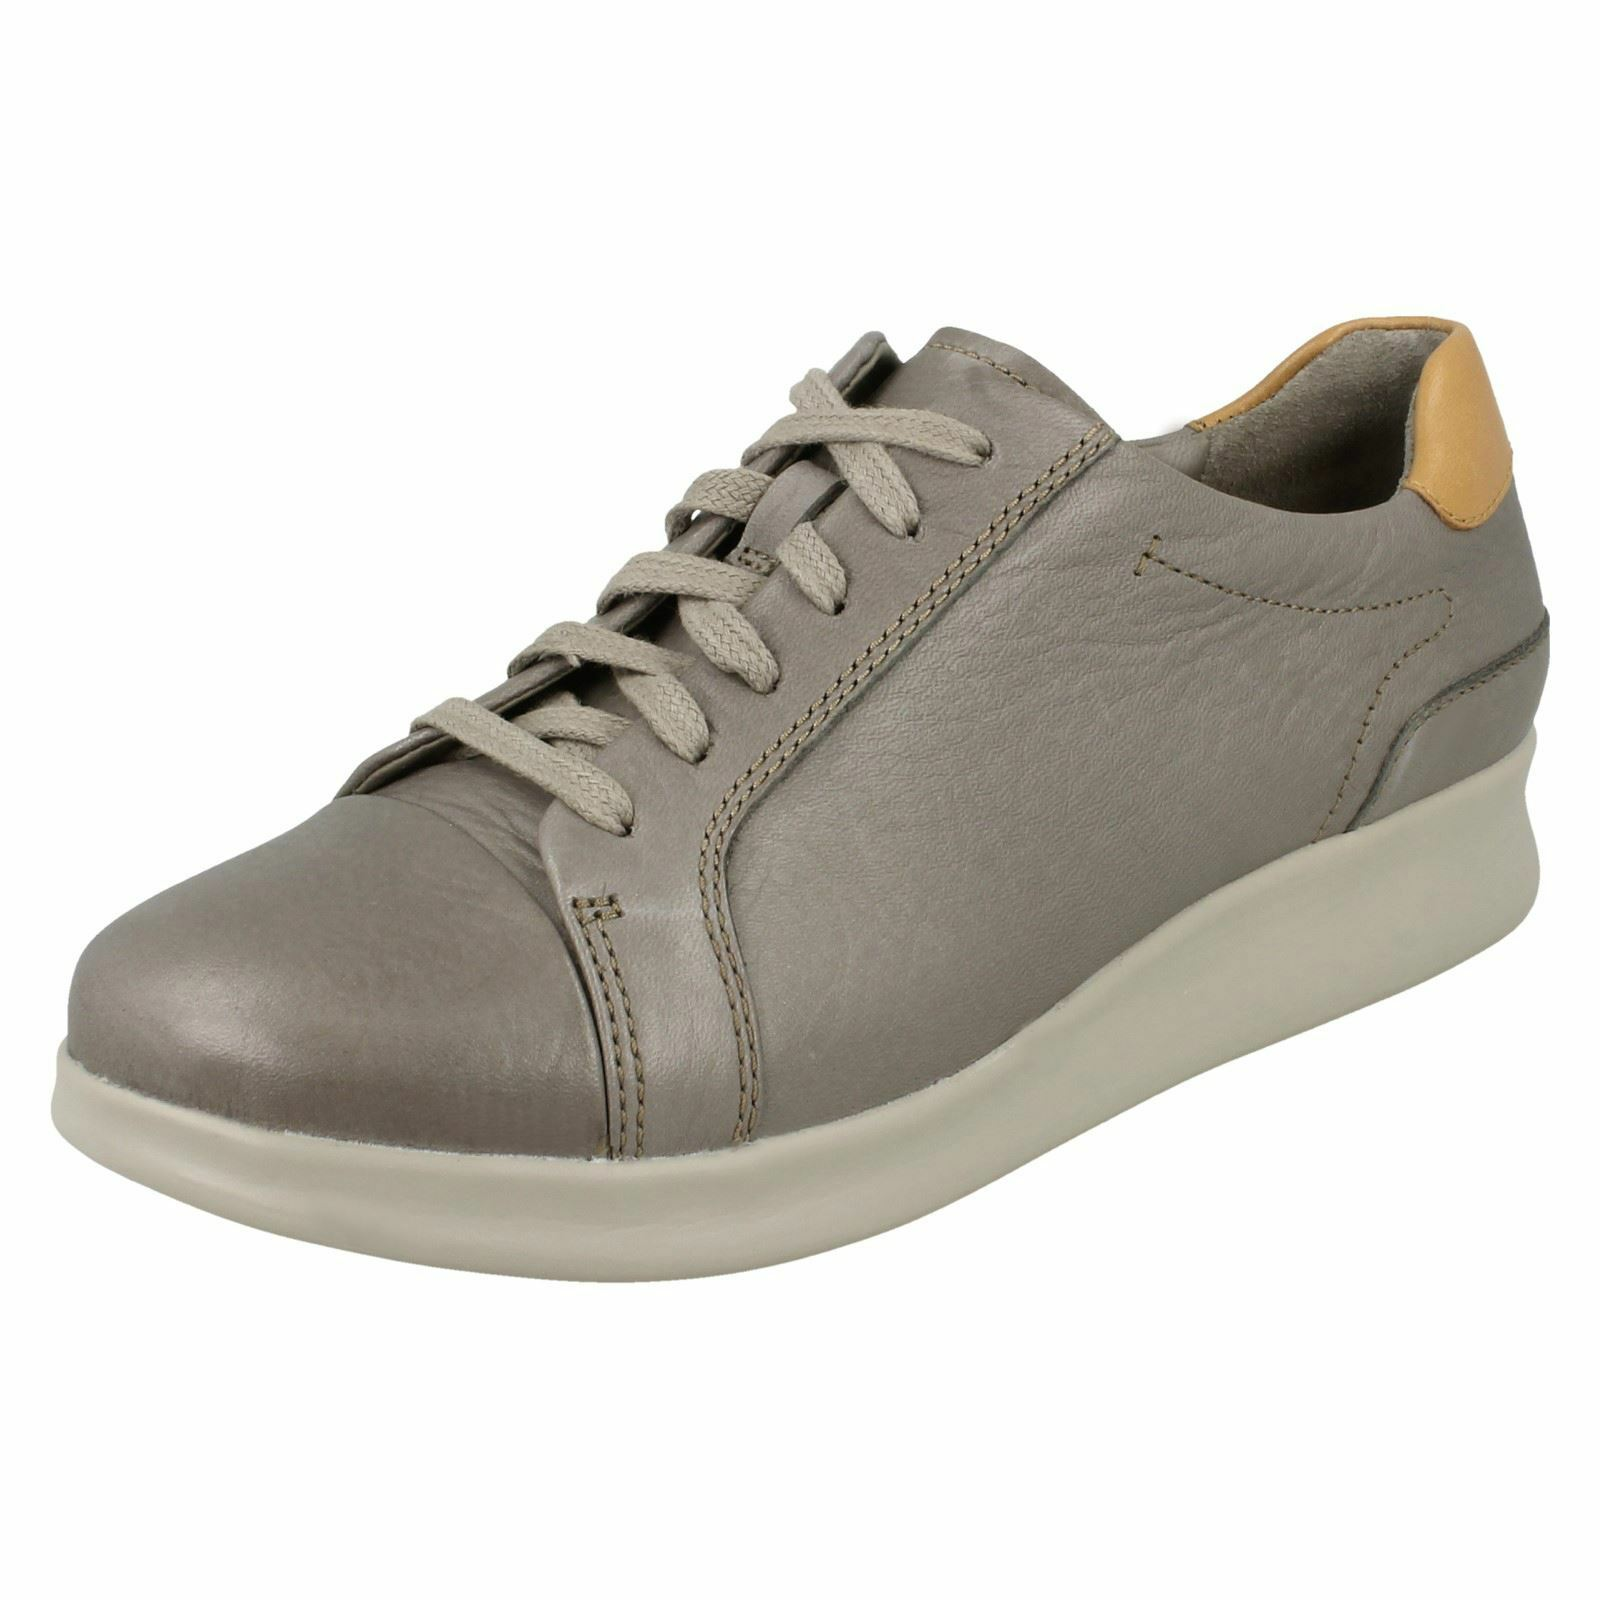 Ladies Unstructured By Clarks Casual shoes 'Un Flare'